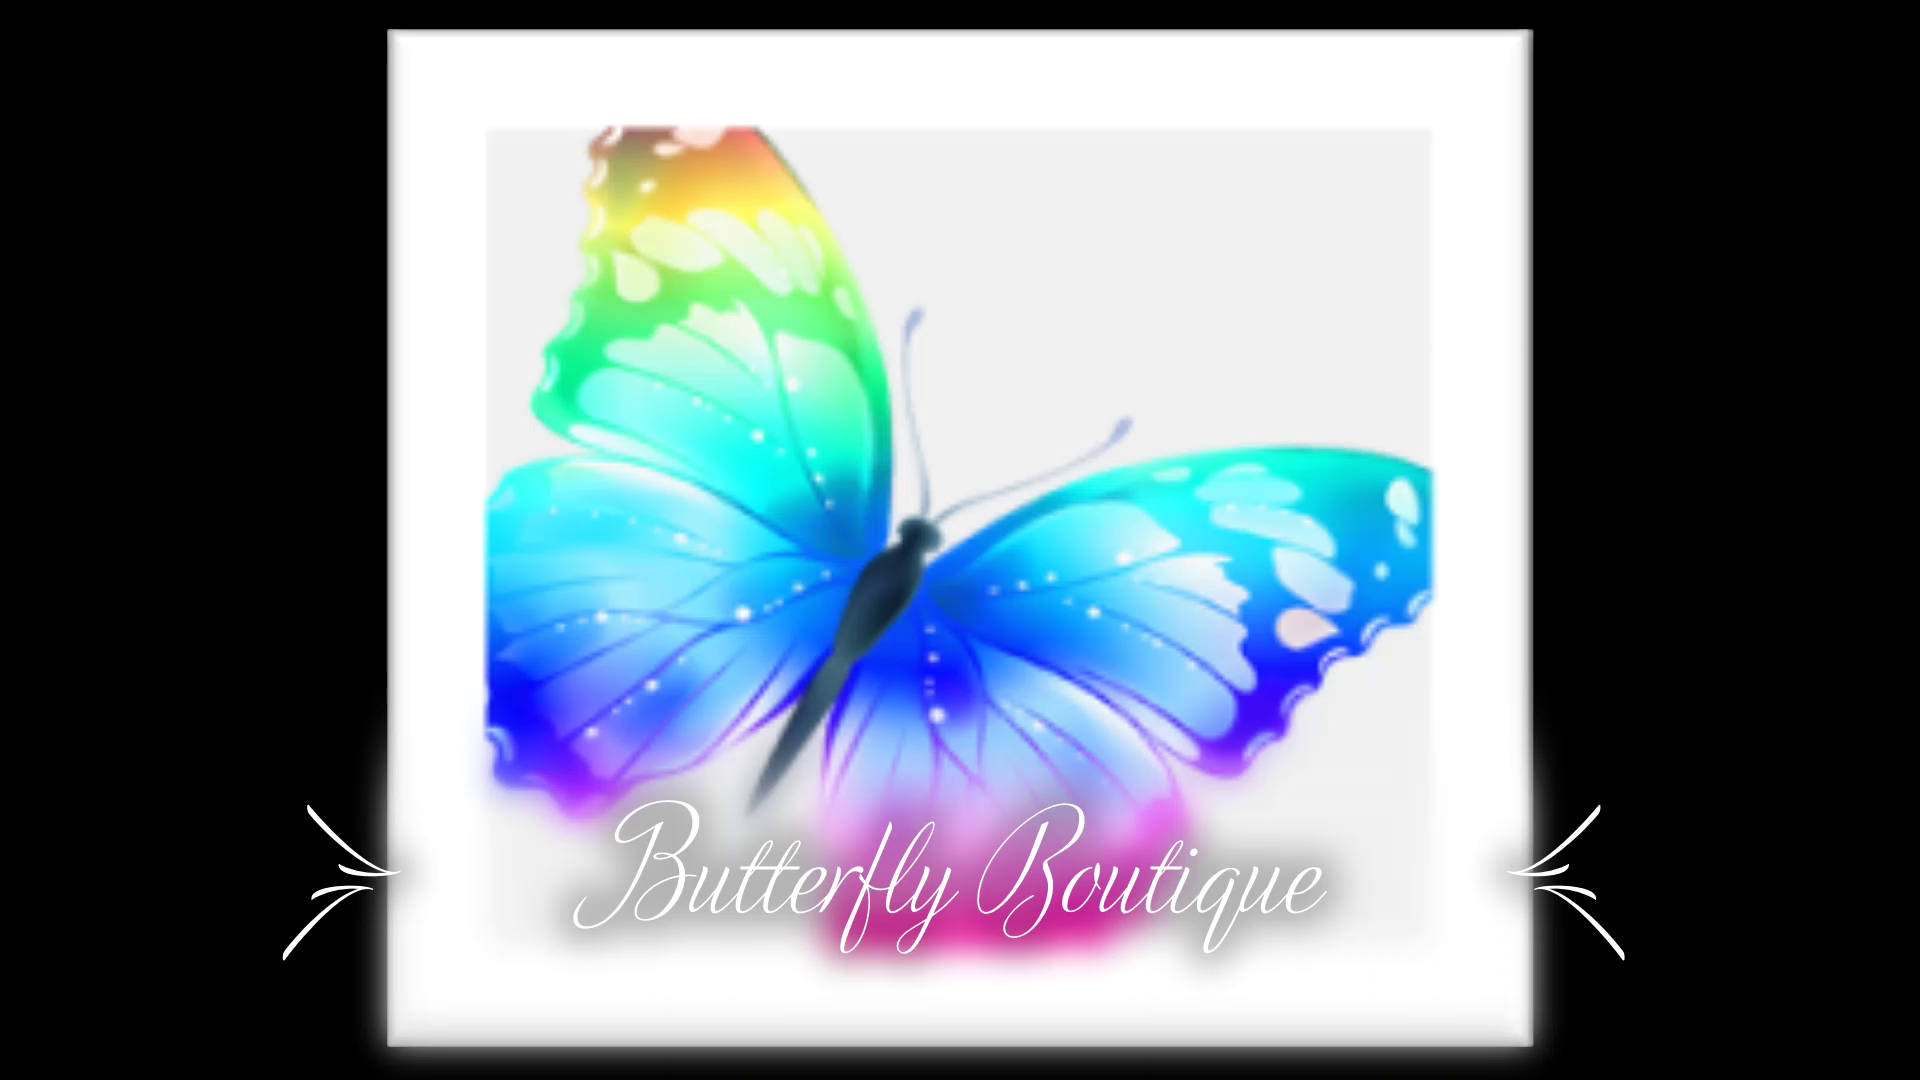 Butterfly Boutique